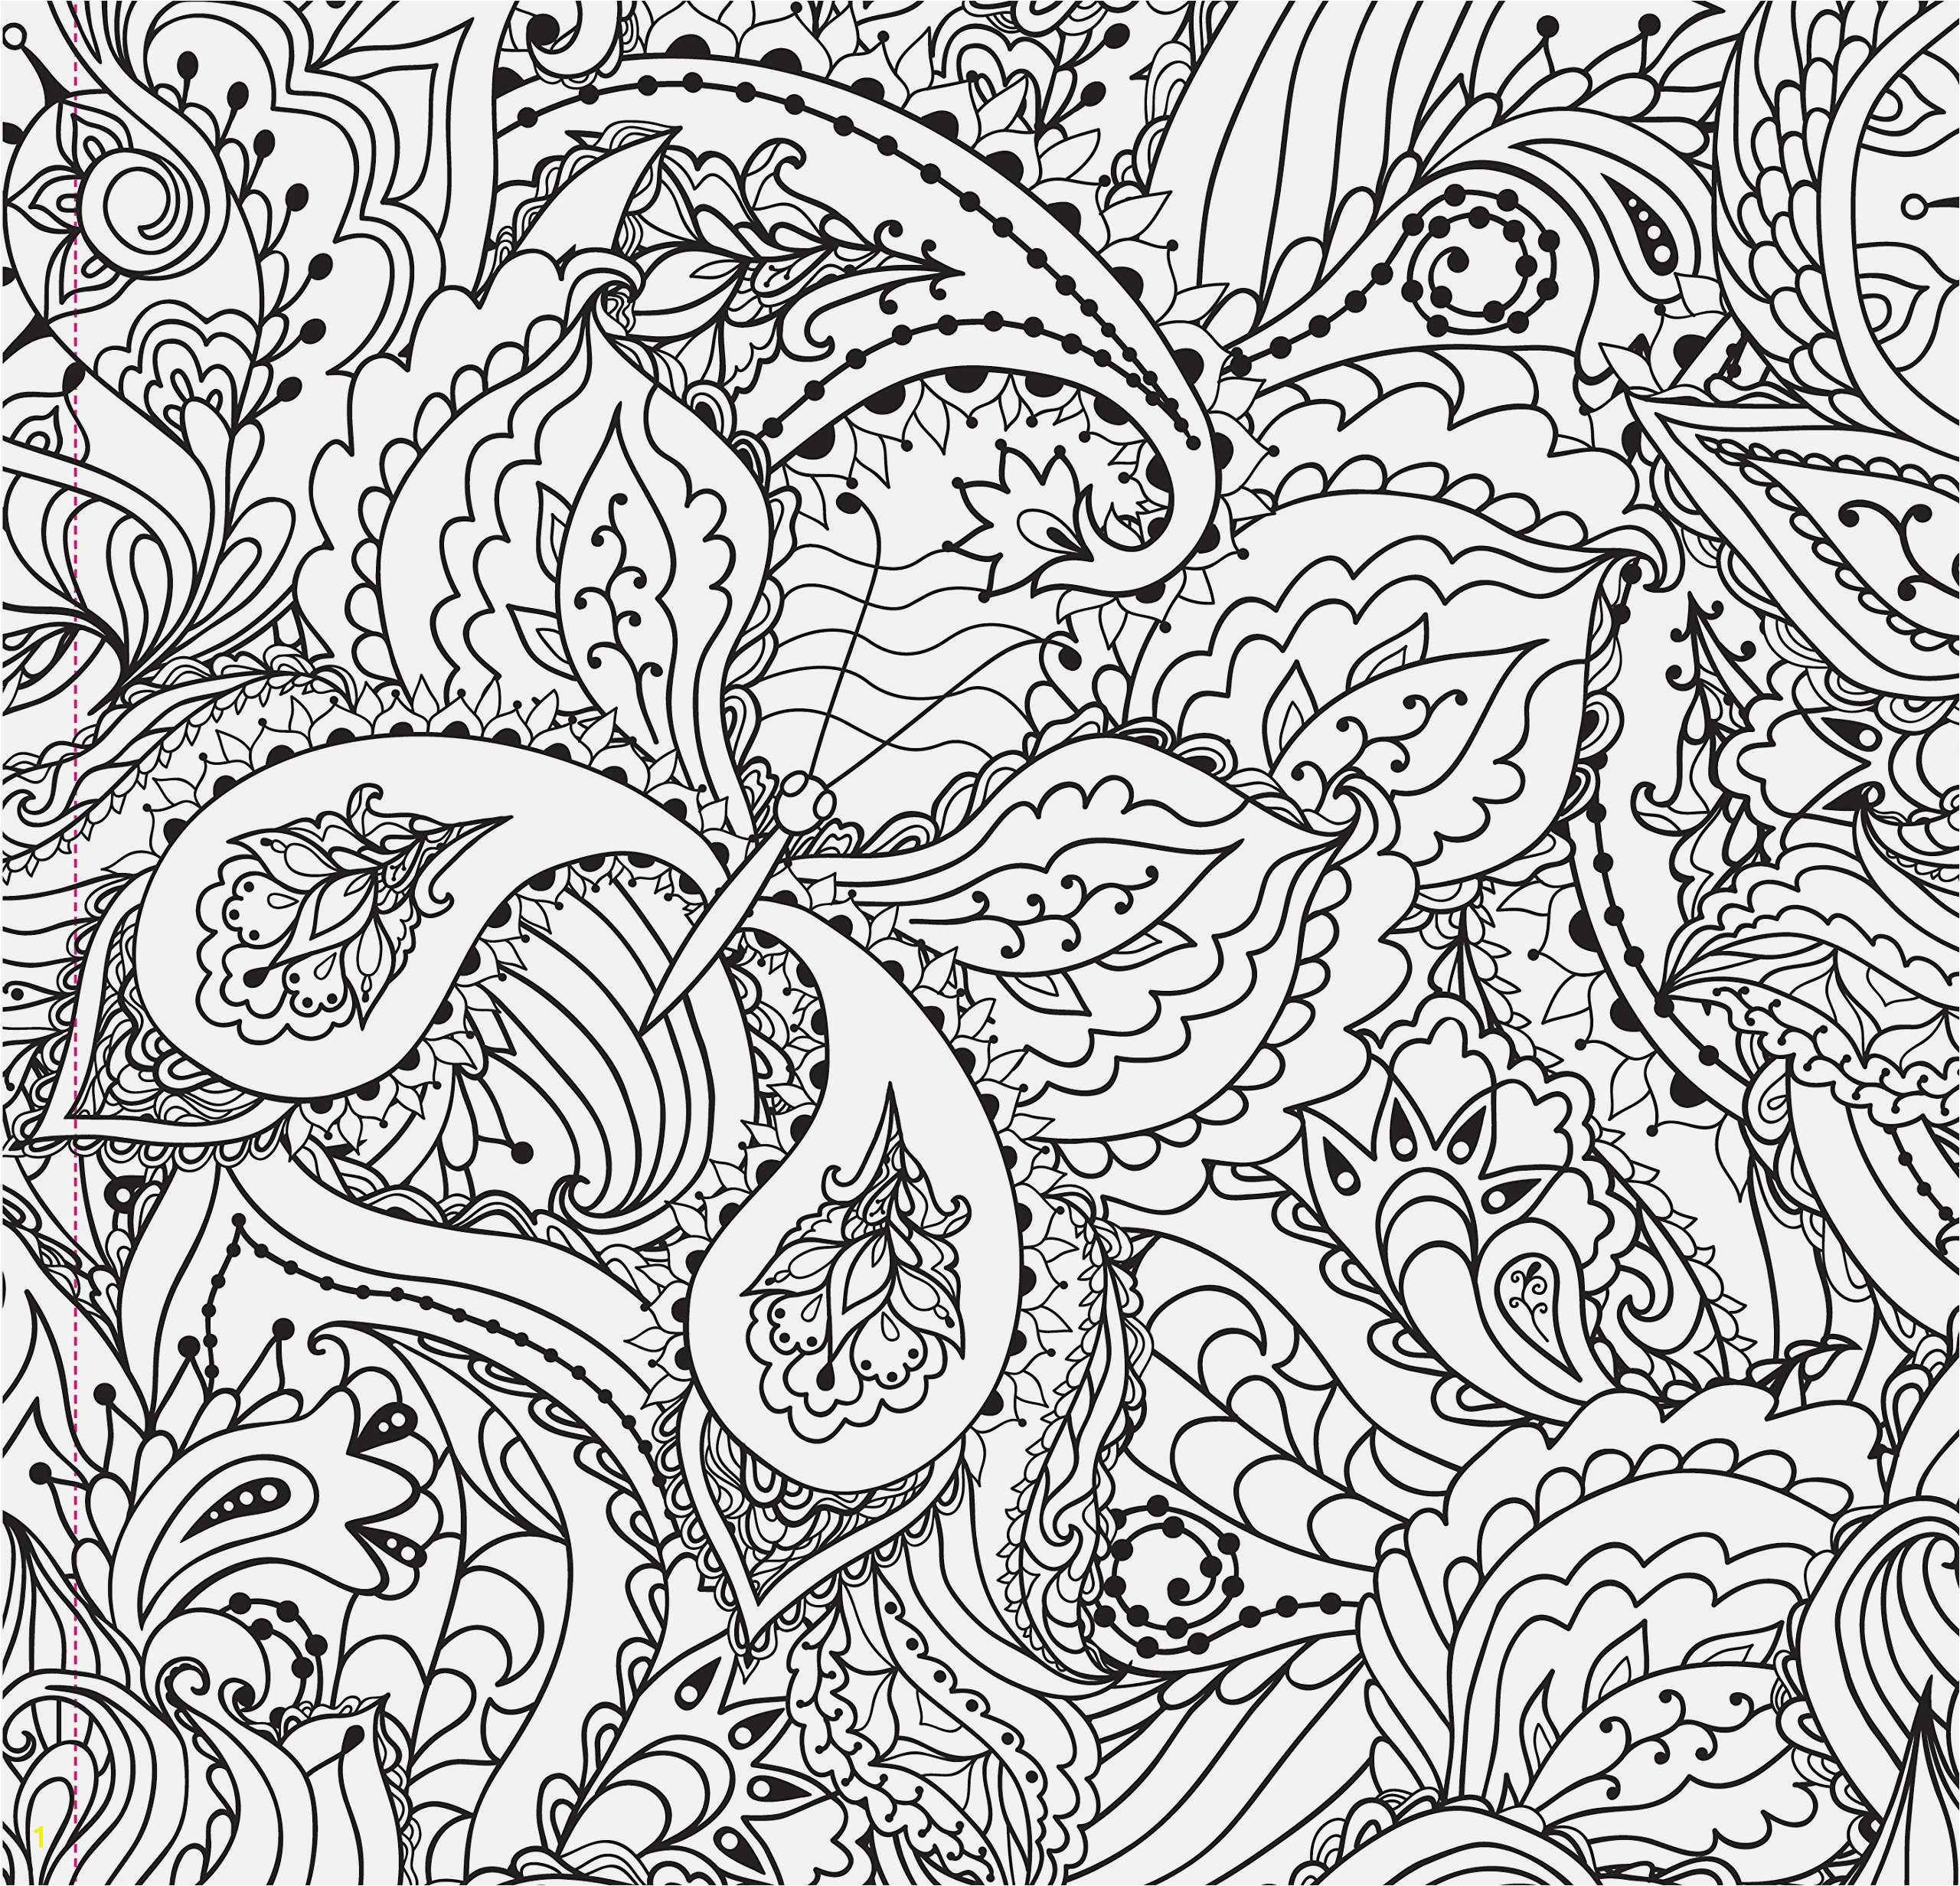 Stress Relief Coloring Books the Best Ever Adult Coloring Book Stress Relieving Patterns Coloring Book